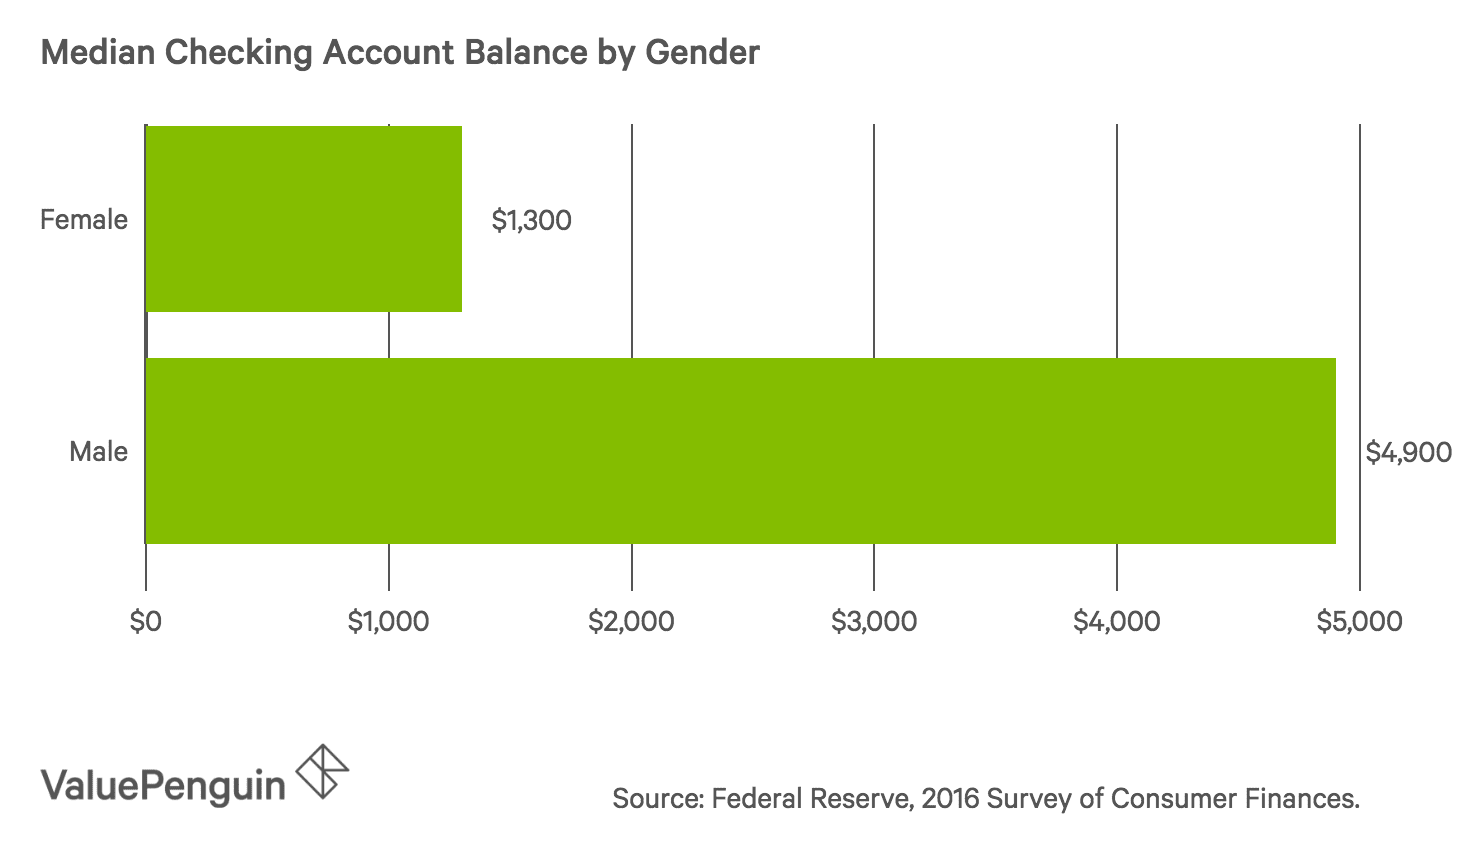 Bar graph of checking account balances for males and females in the U.S.